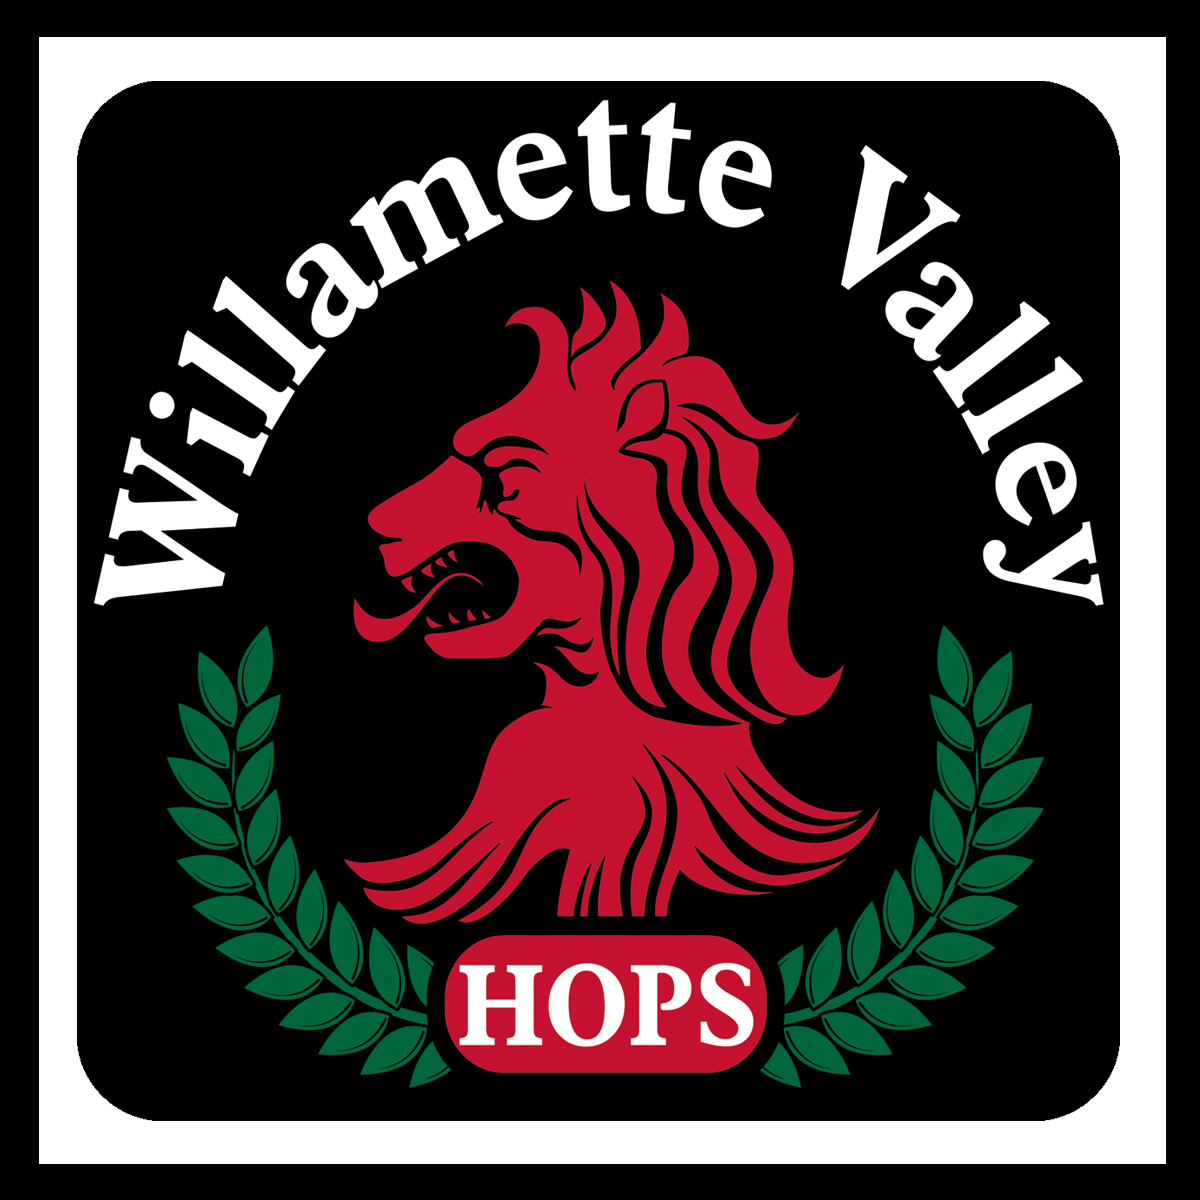 Willamette Valley HOPS